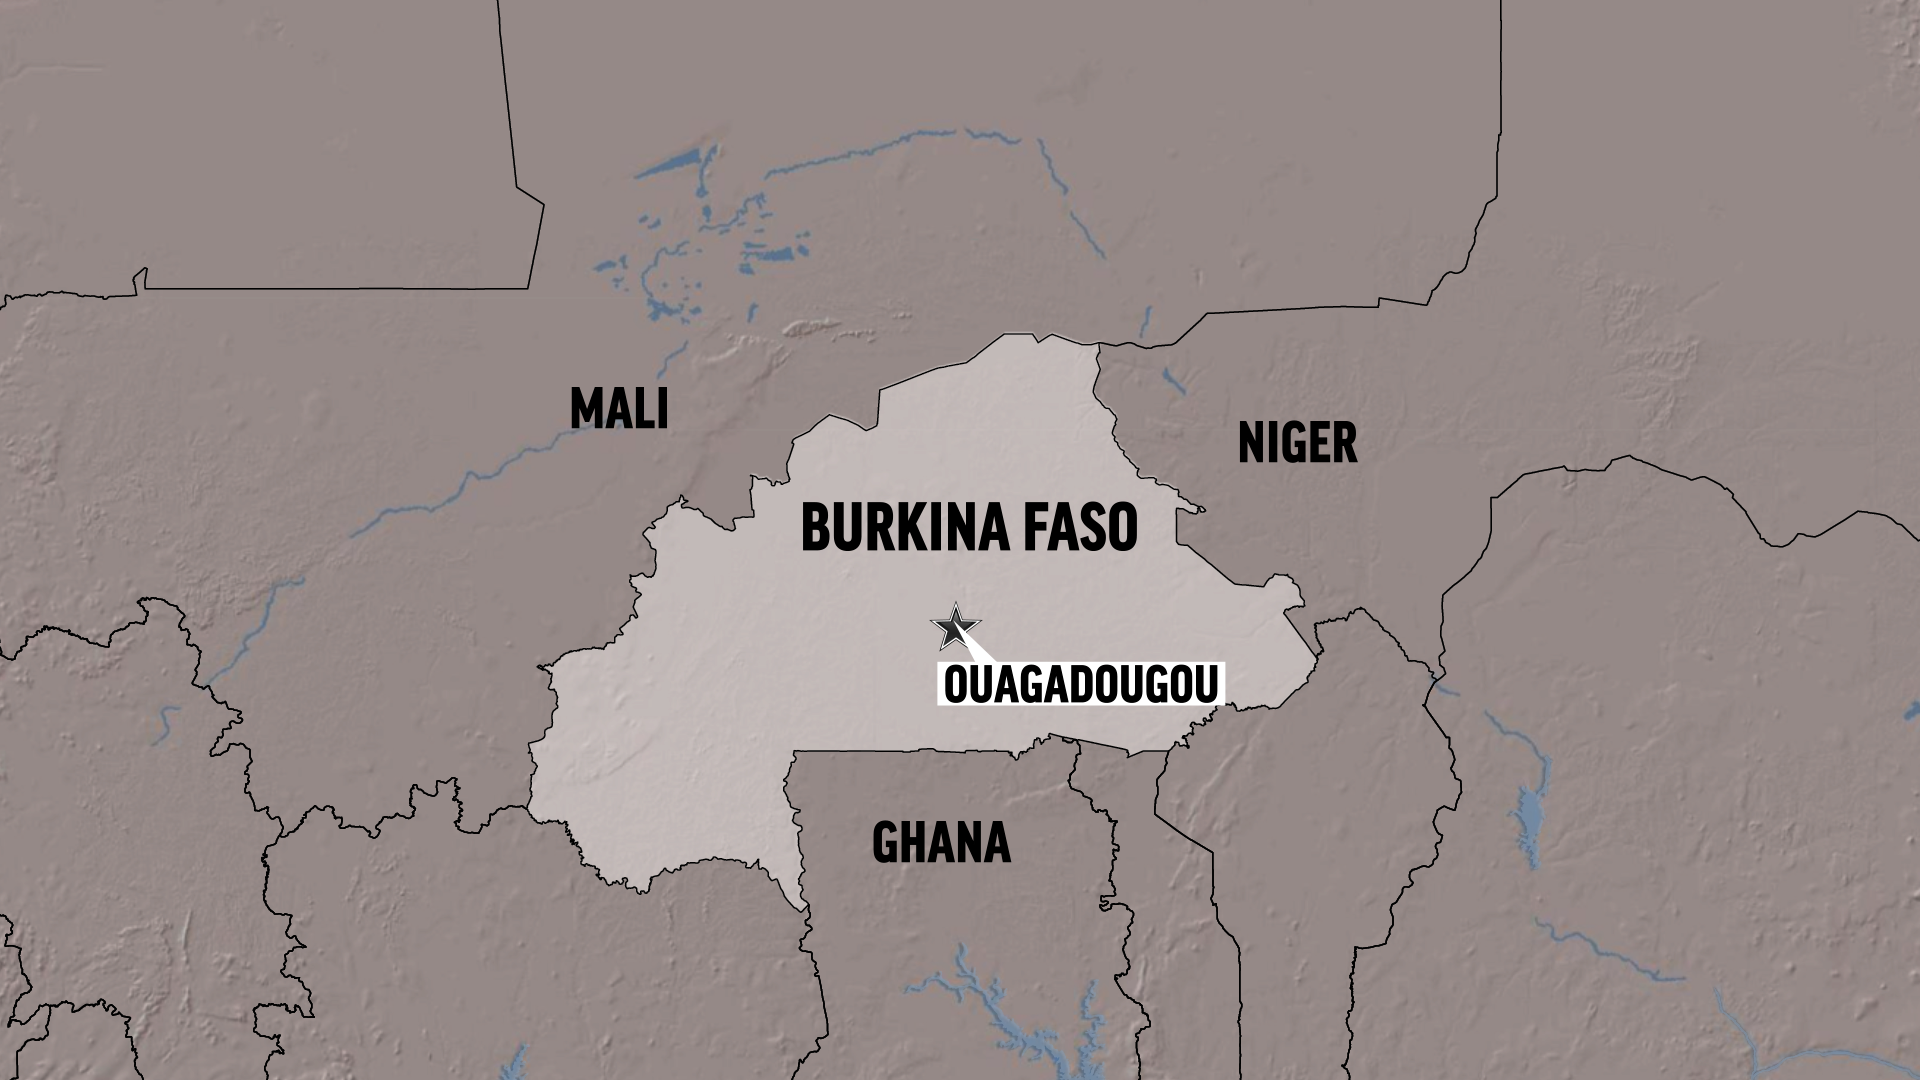 17 people die in Burkina Faso restaurant attack